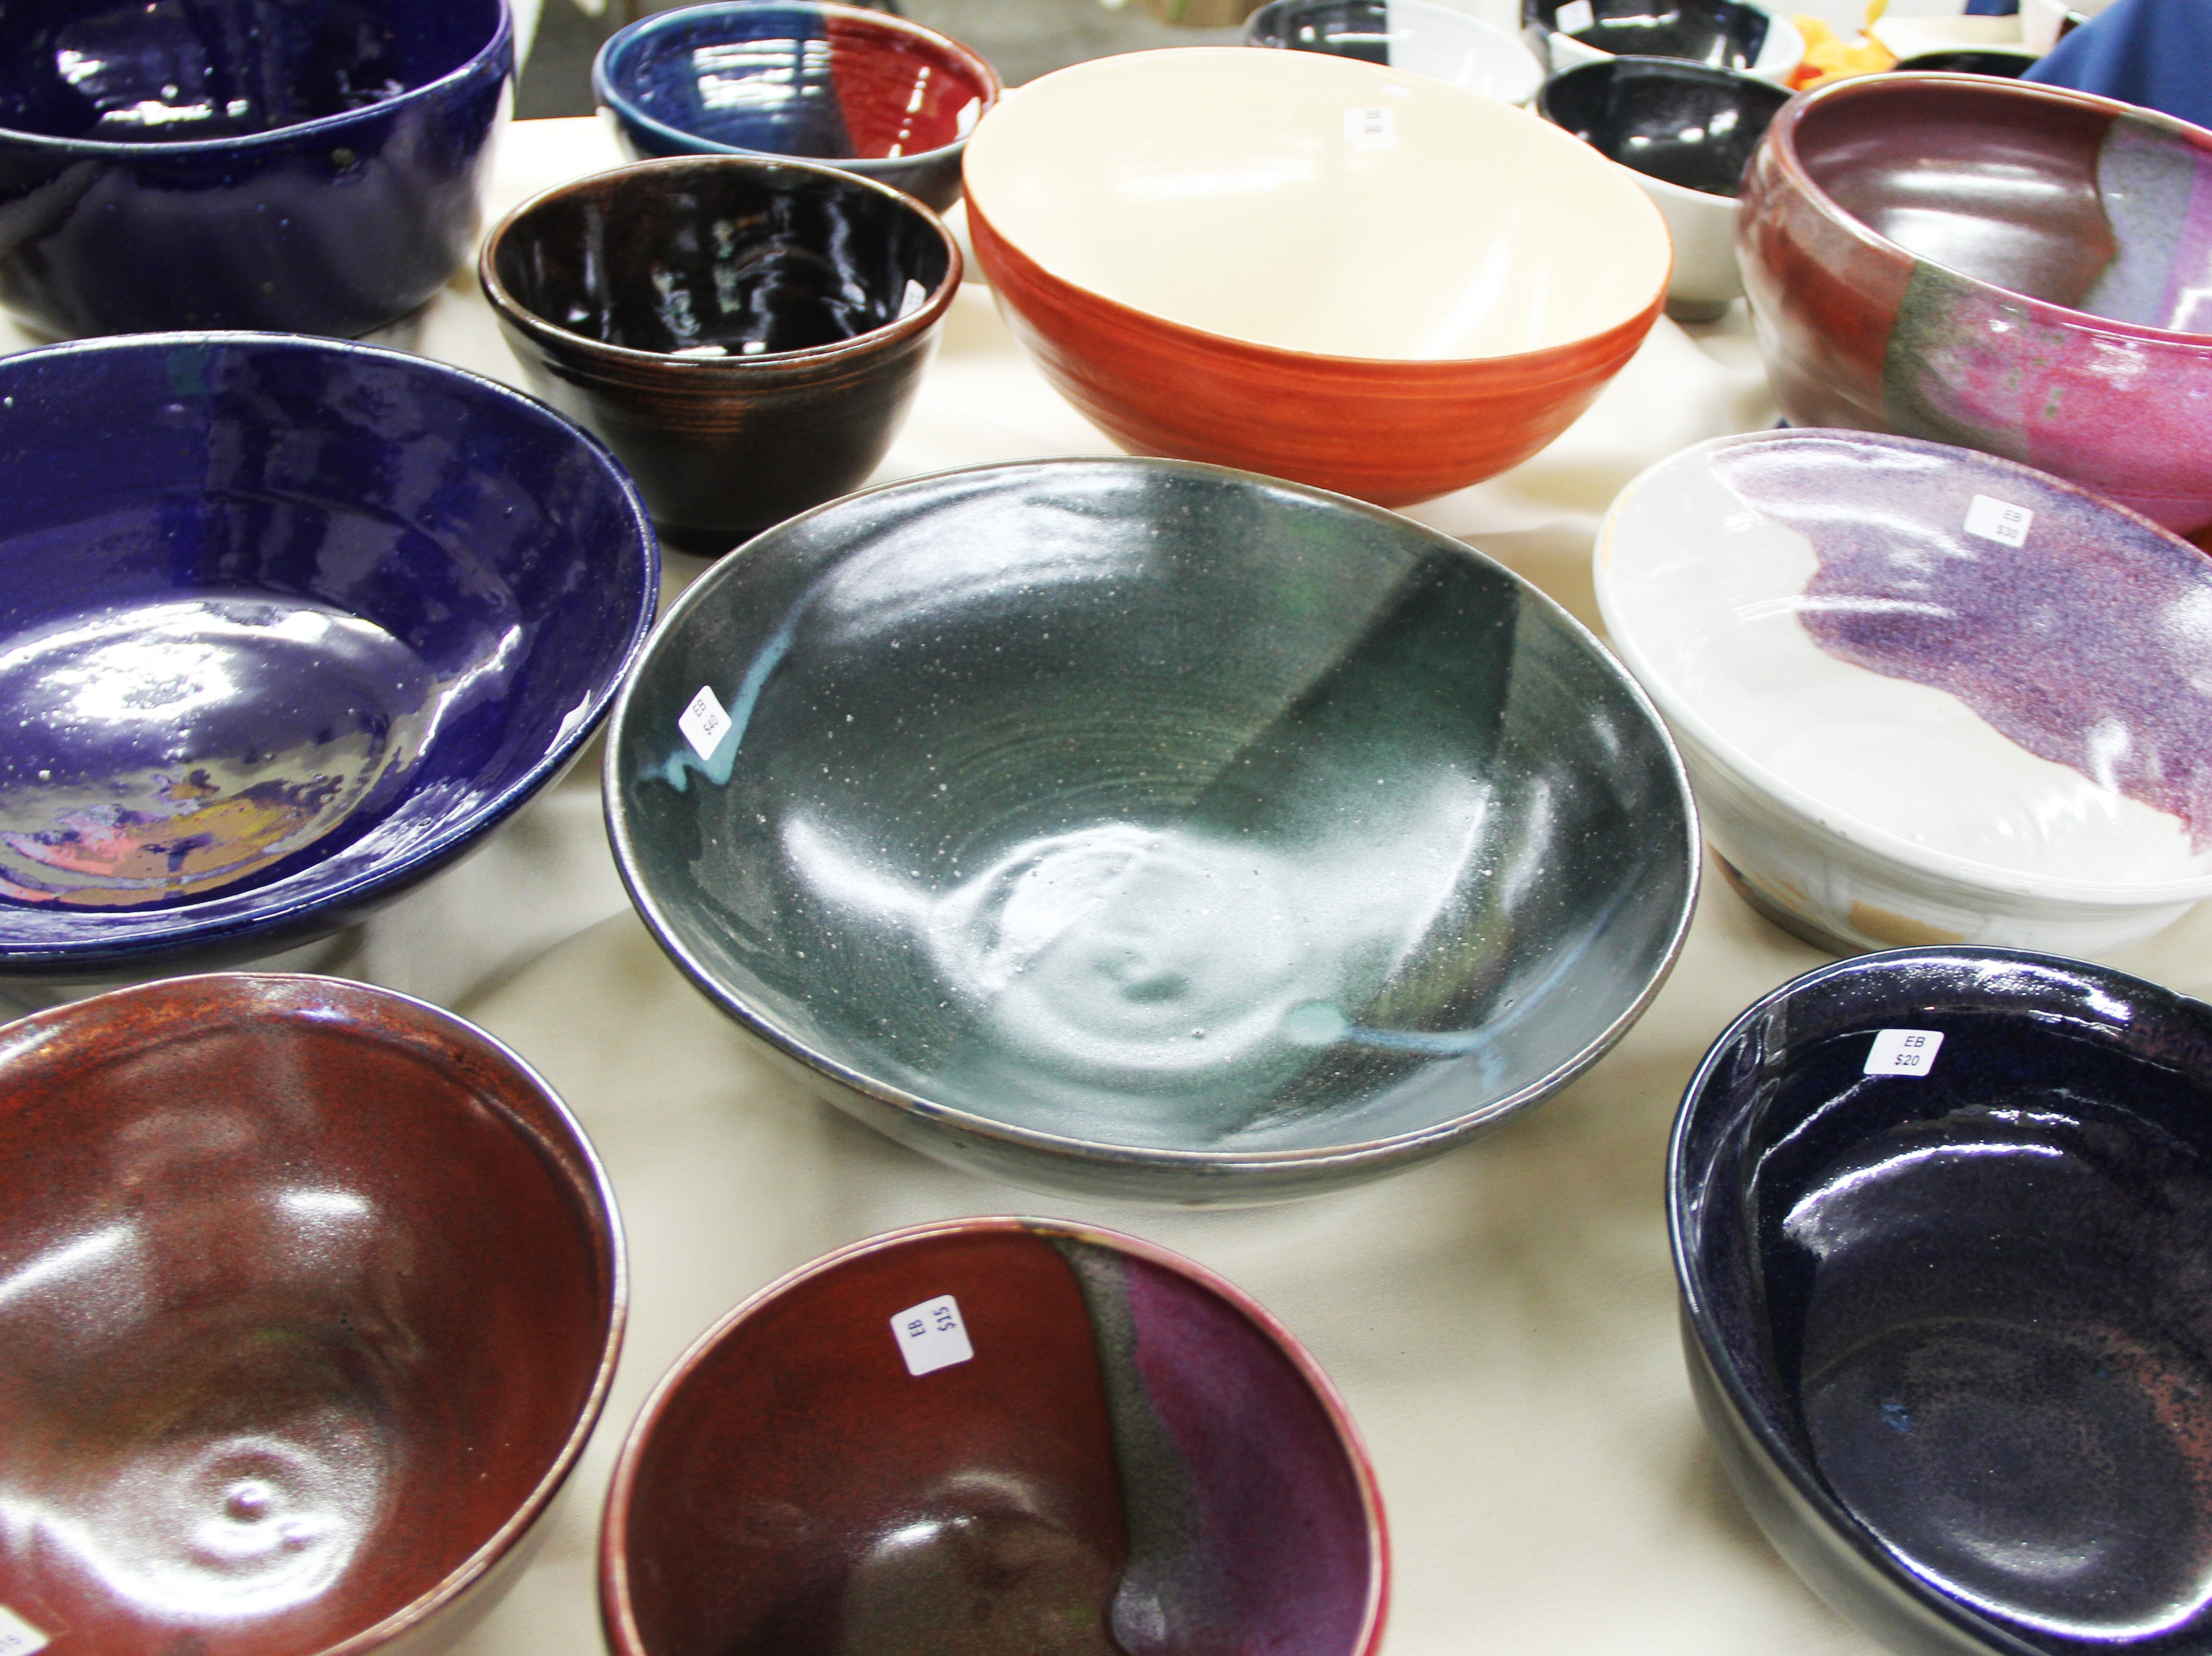 There were almost 1,200 bowls for sale at the beginning of the Willamette Art Center's Empty Bowls fundraiser on Saturday, Nov. 17.